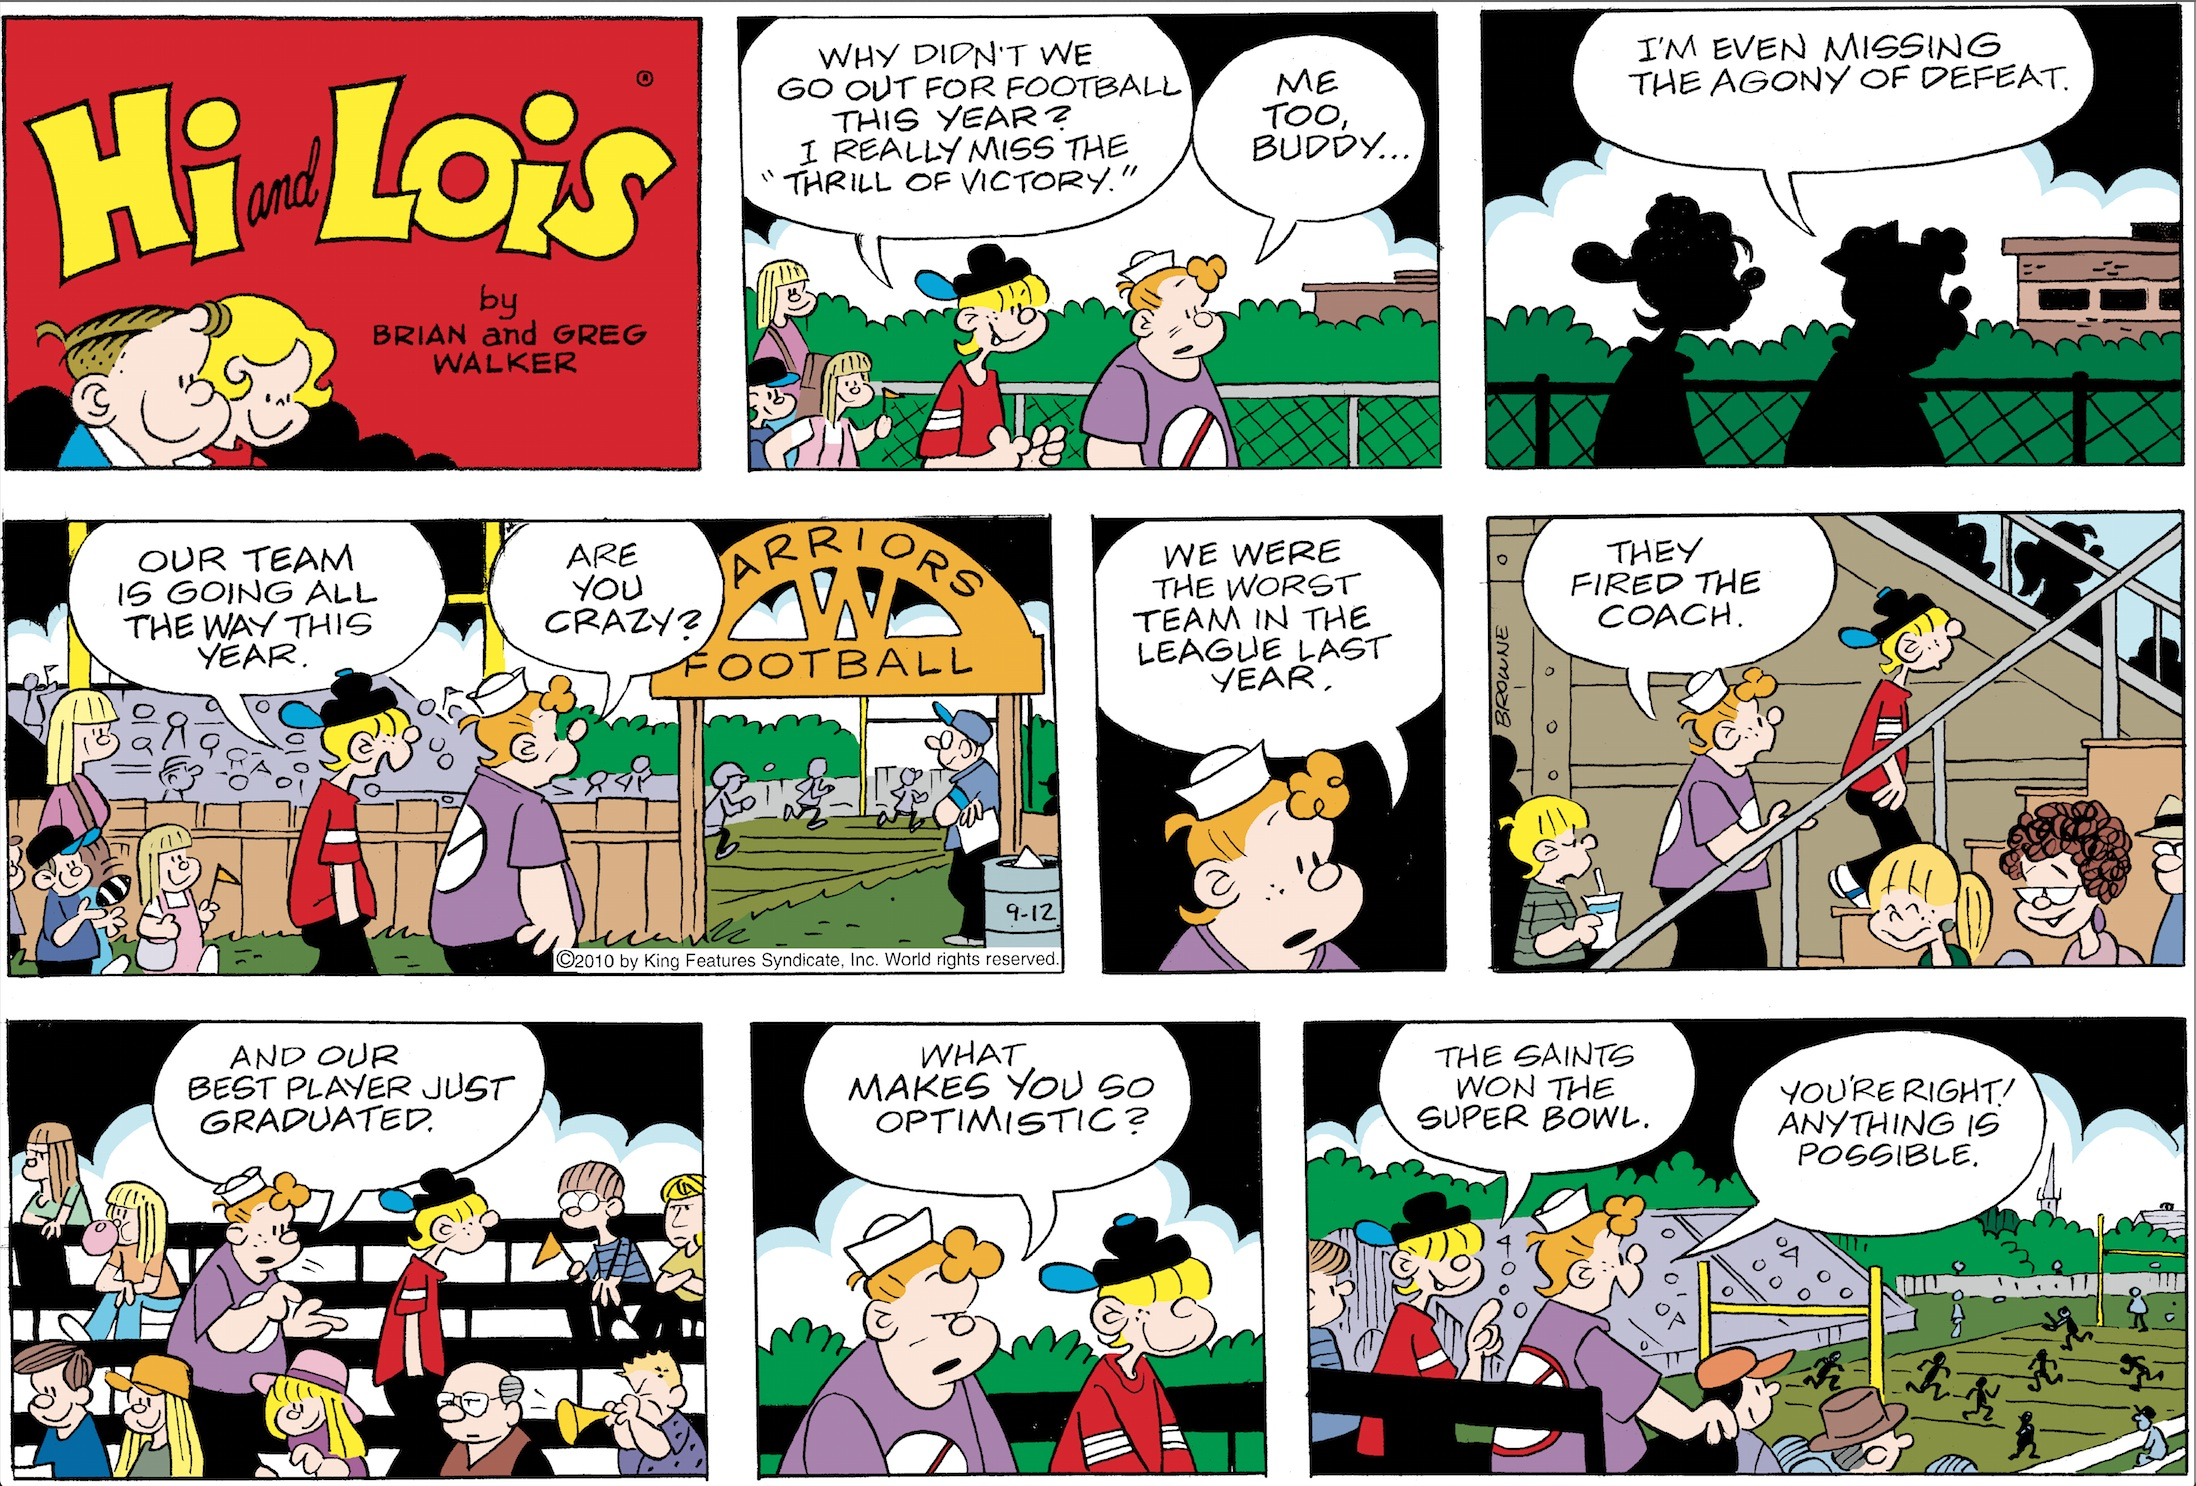 Hi and Lois Sunday page, September 12, 2010.